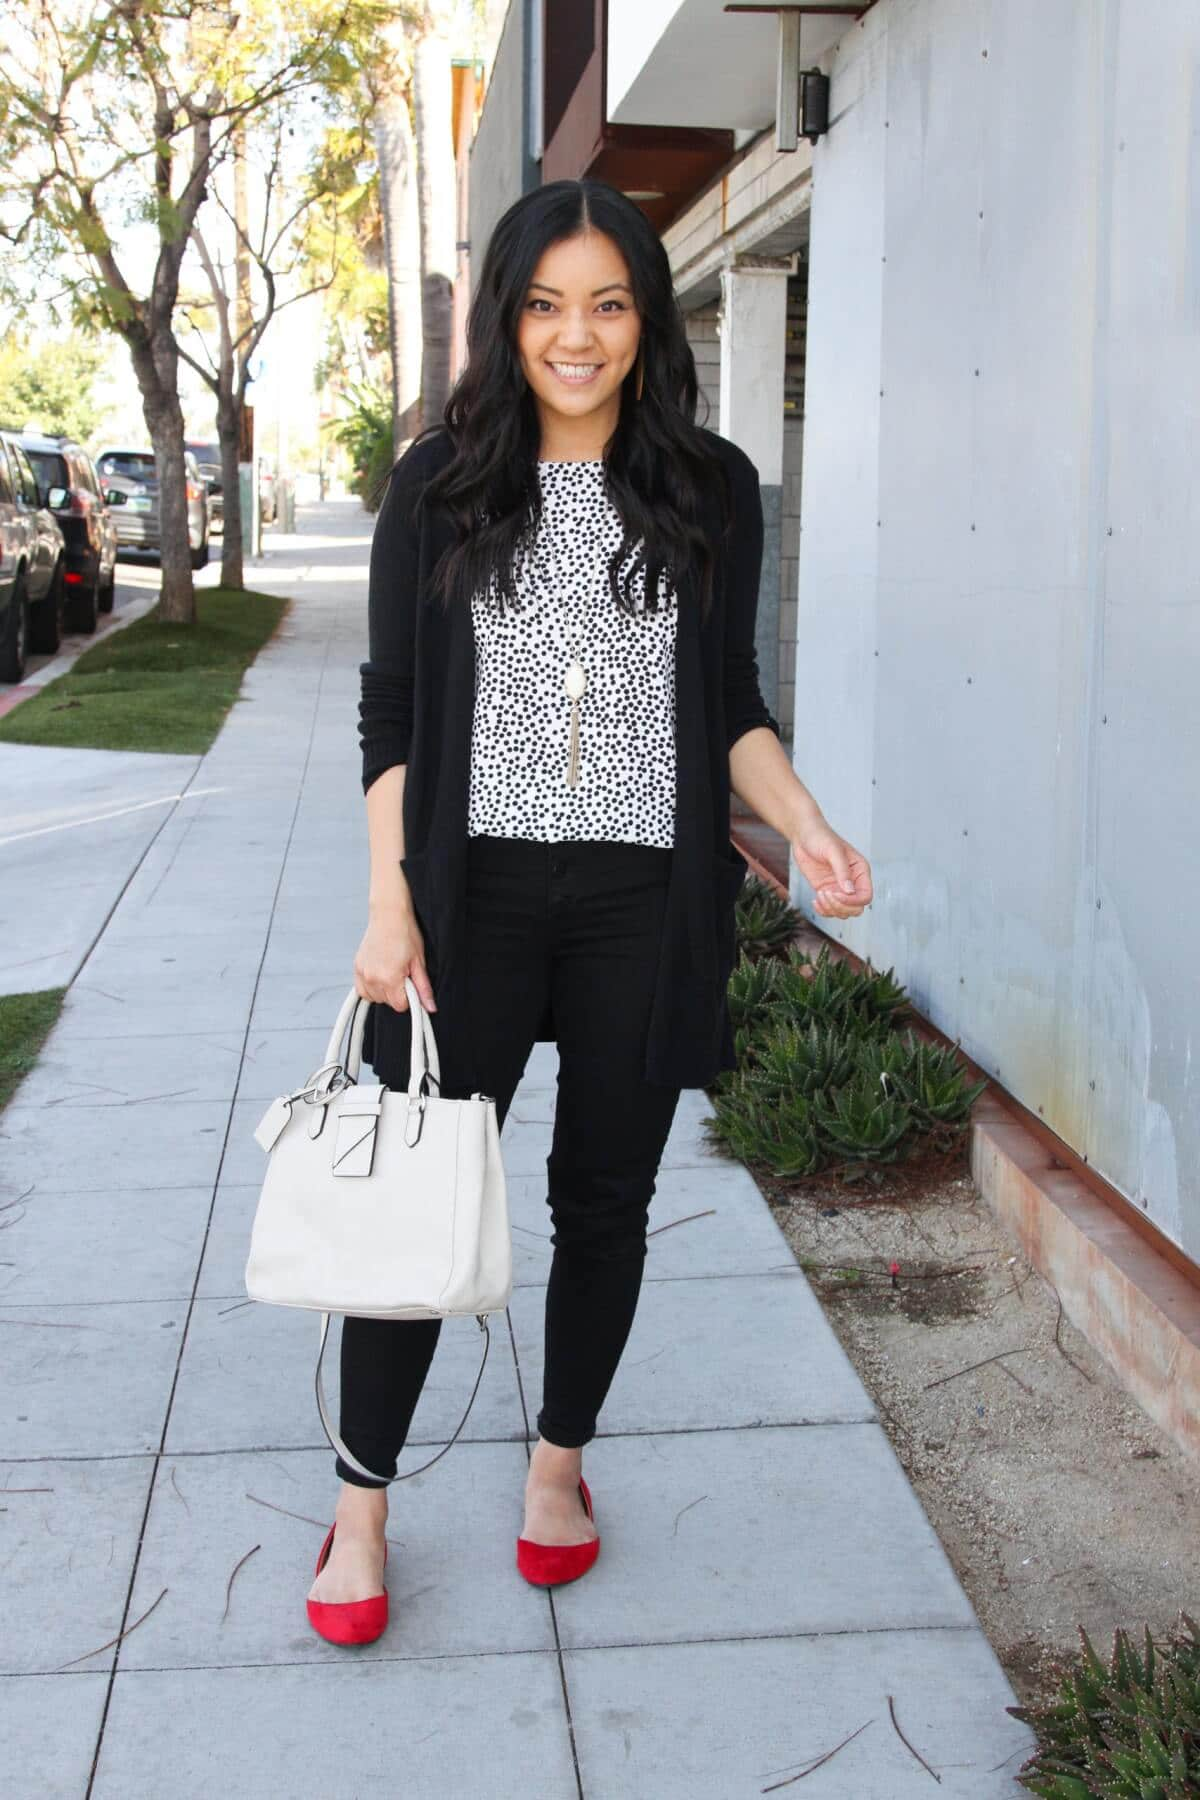 outfit with black jeans for spring: black jeans + black and white top + pop of color